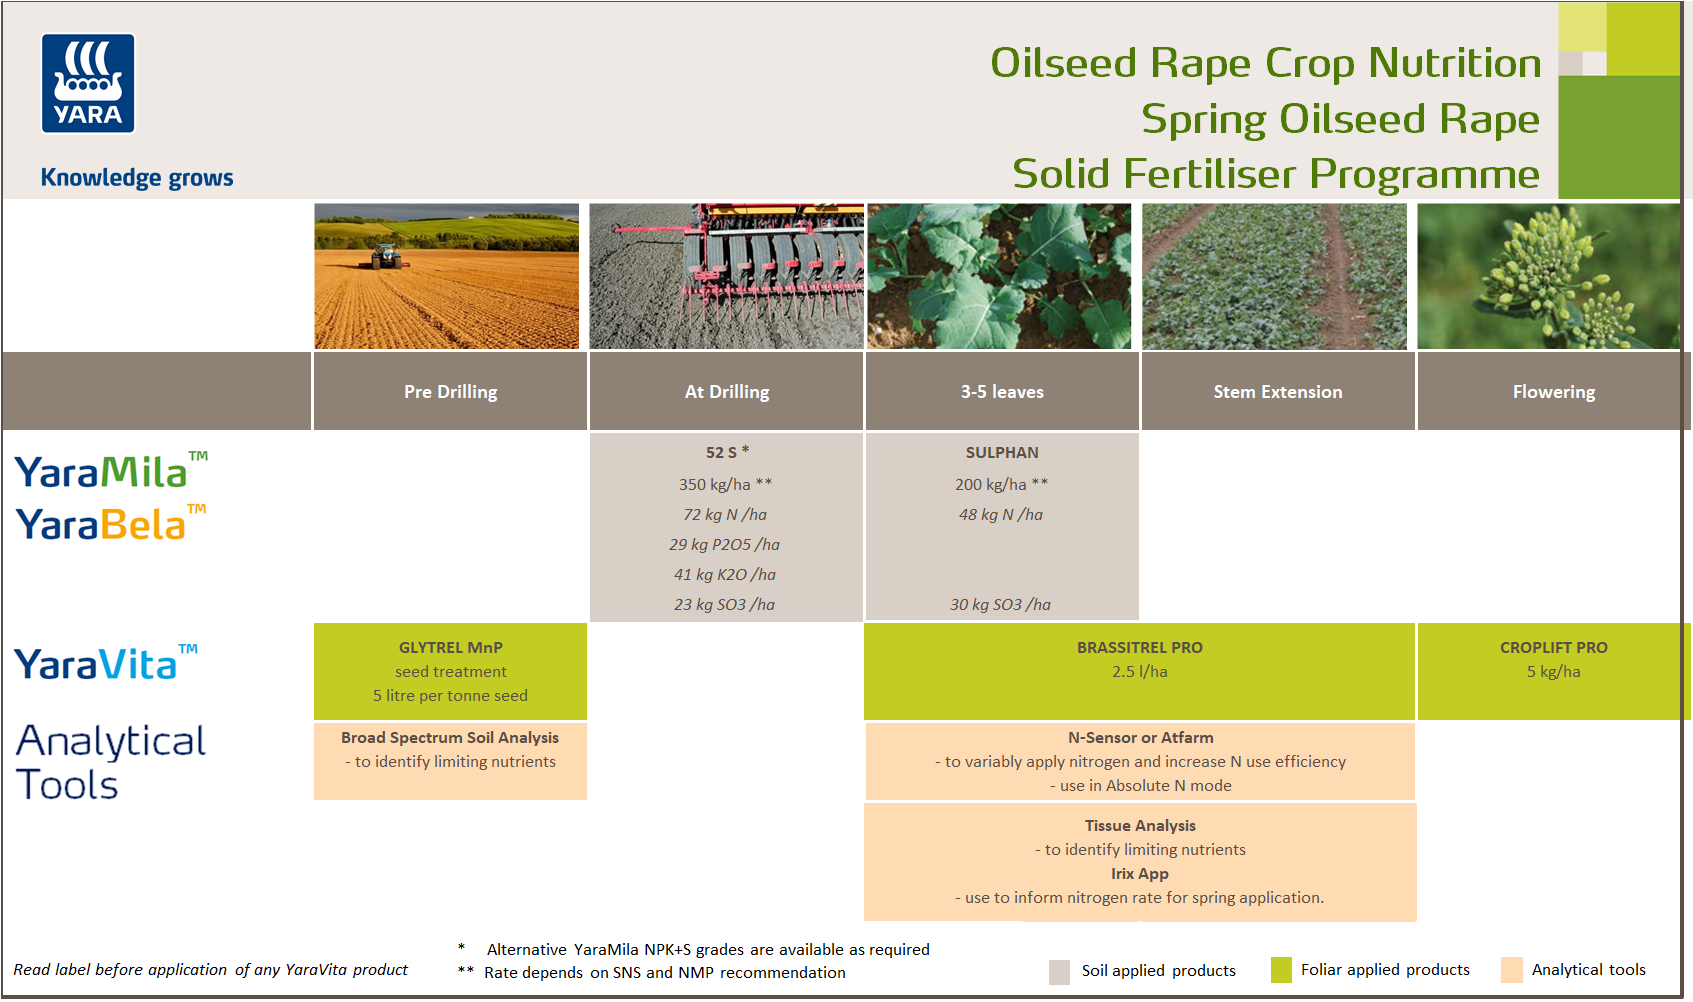 Spring oilseed rape fertiliser programme